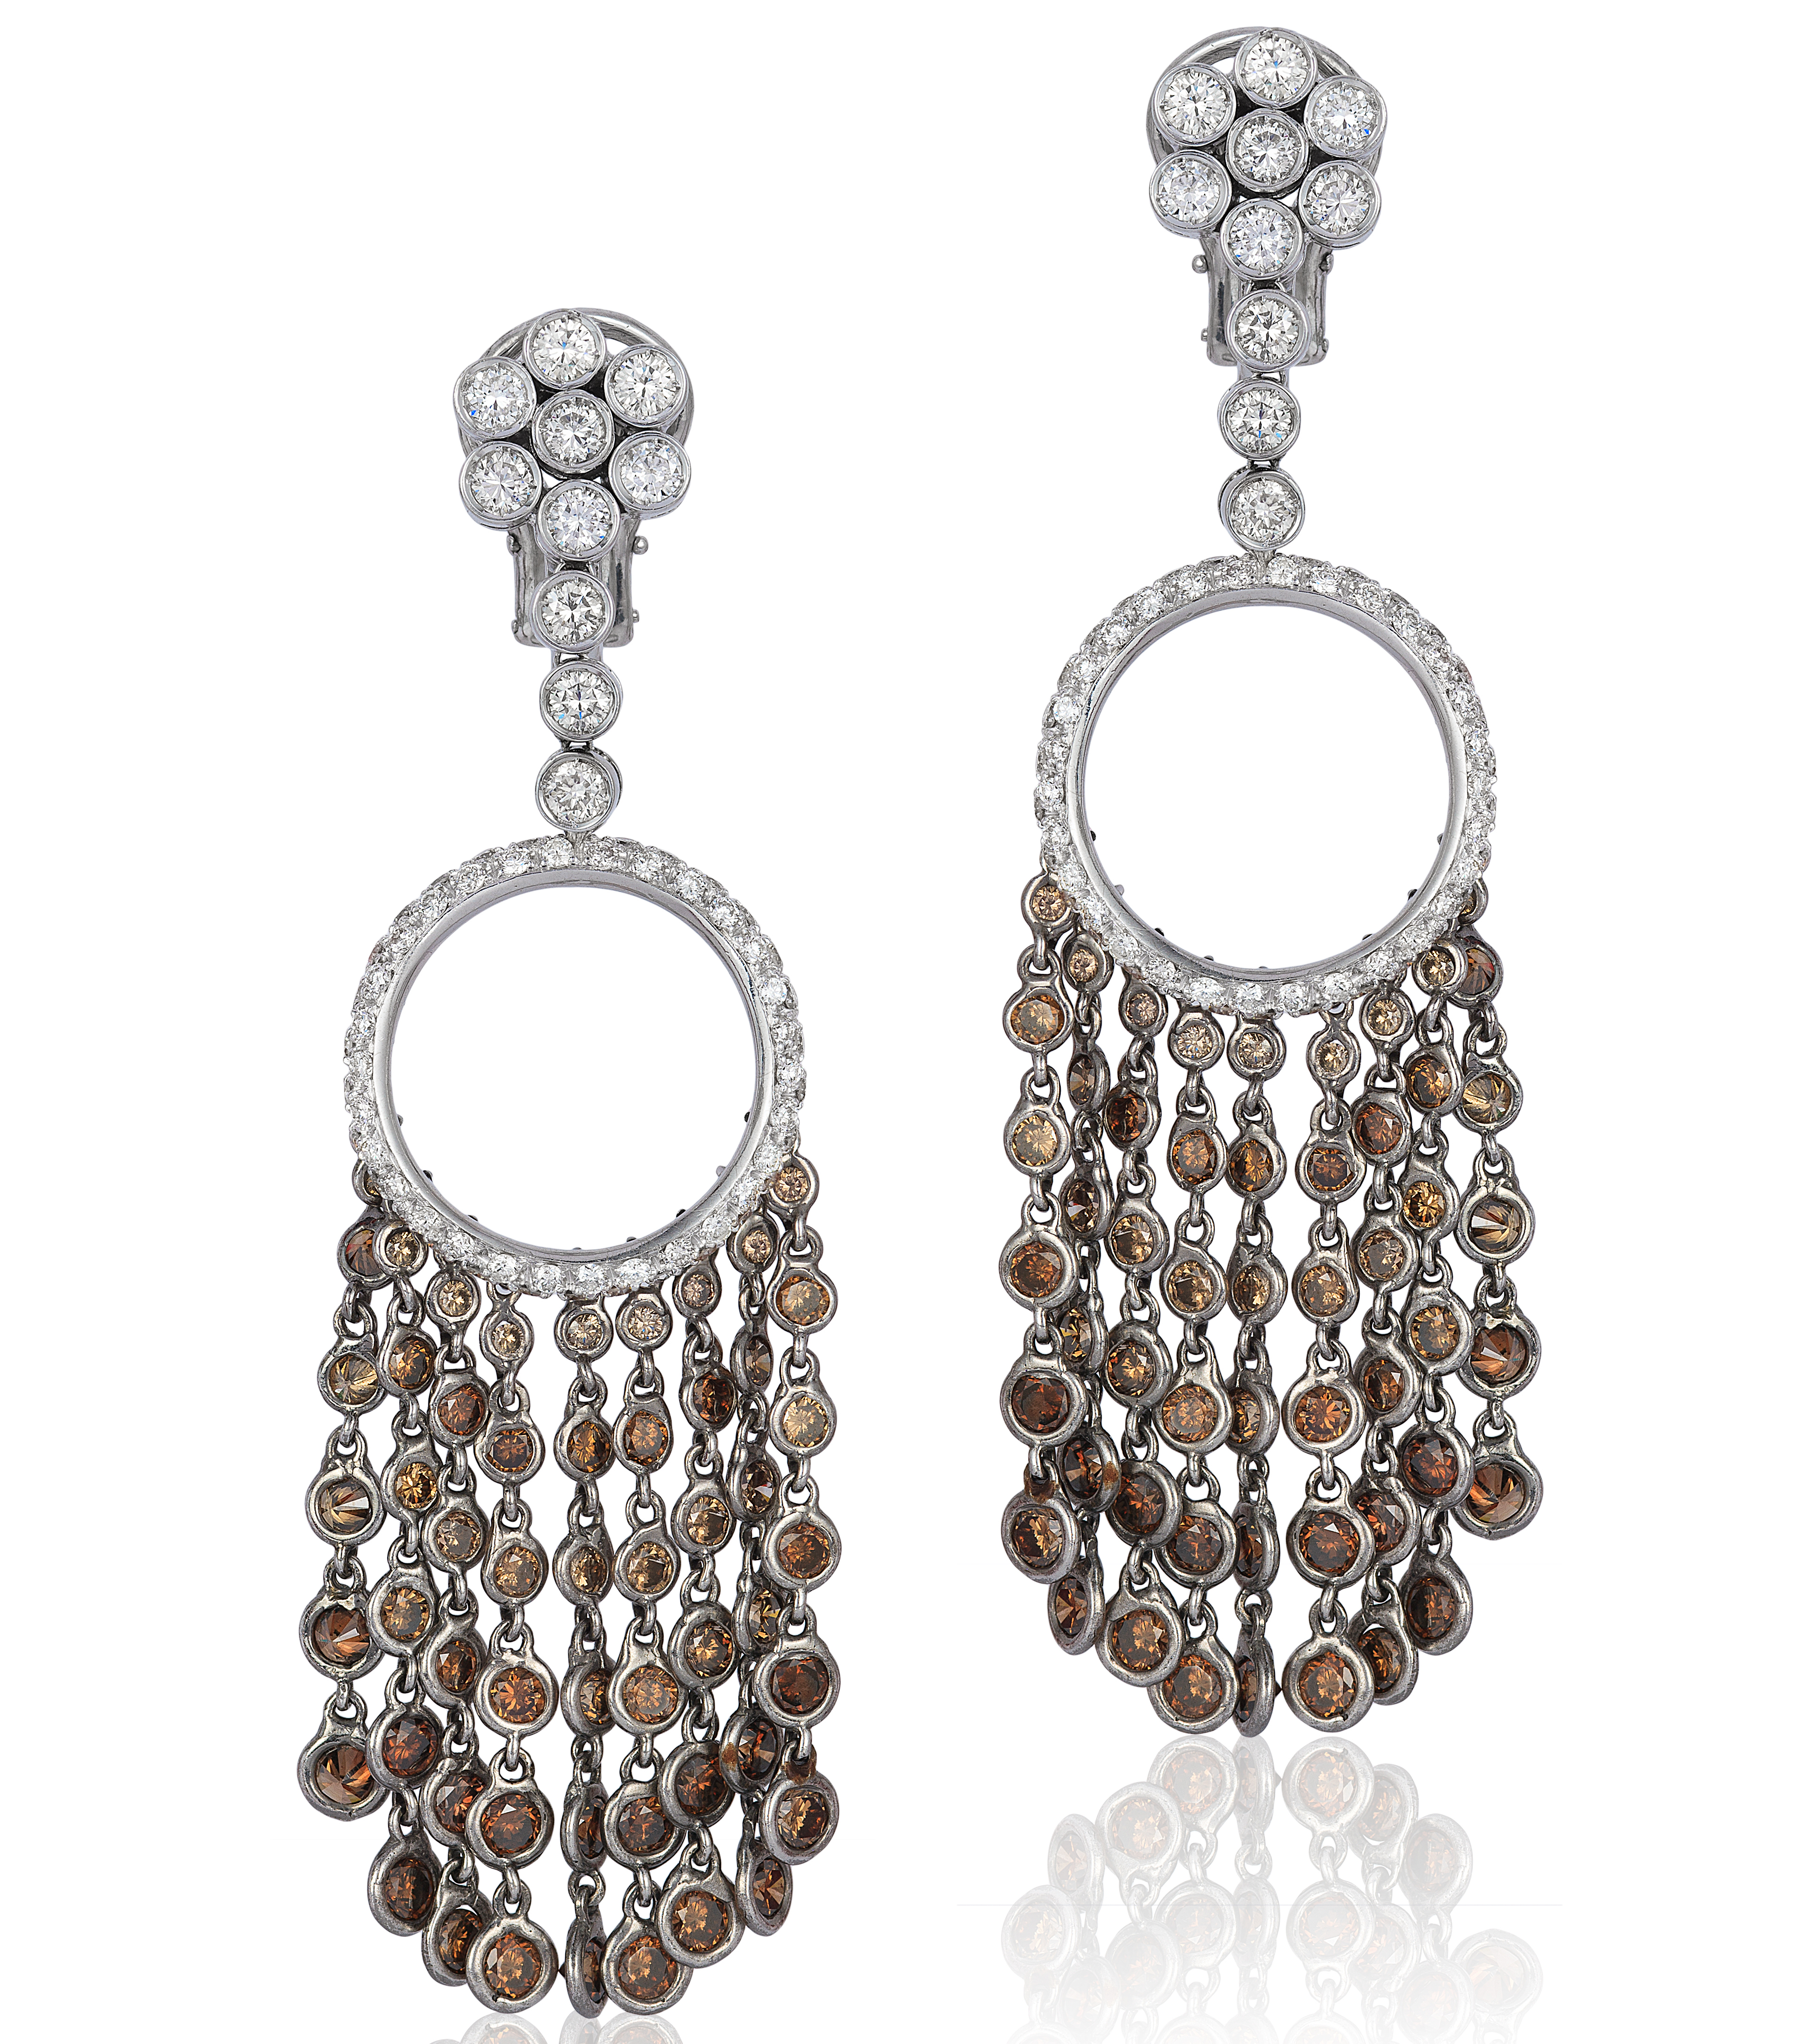 Andreoli earrings | JCK On Your Market